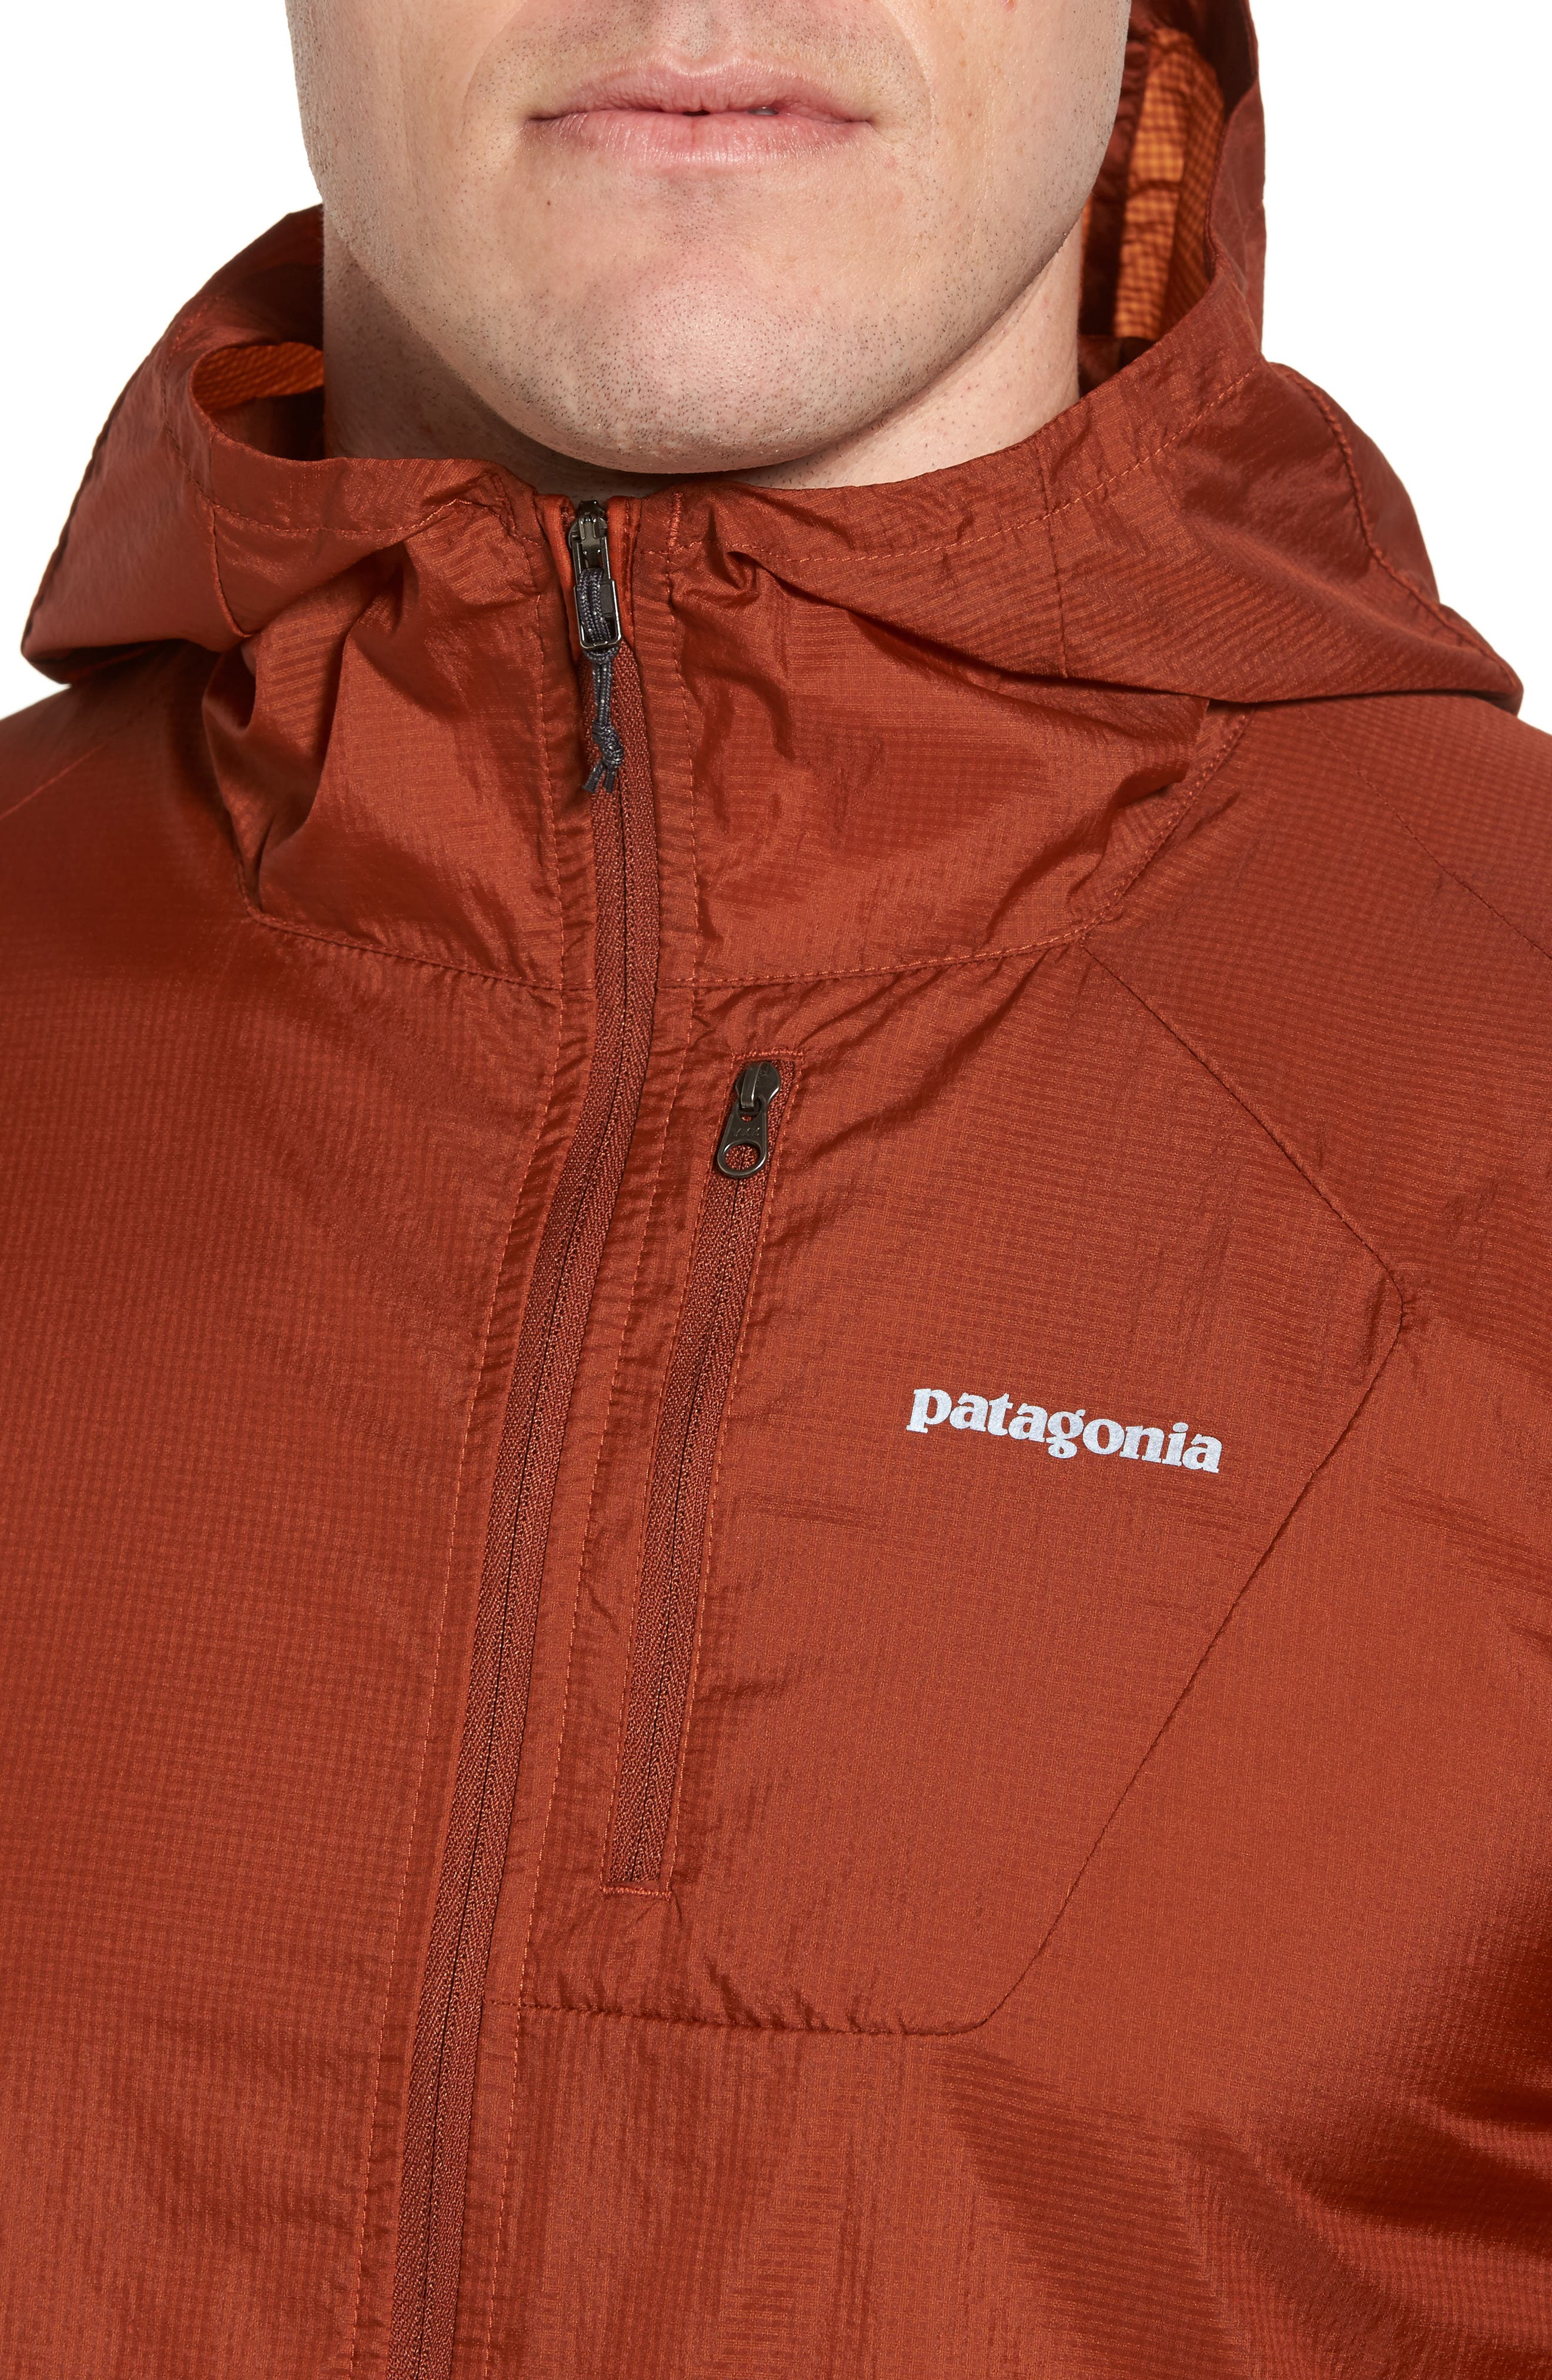 'Houdini' Slim Fit Water Repellent Hooded Jacket,                             Alternate thumbnail 4, color,                             Copper Ore